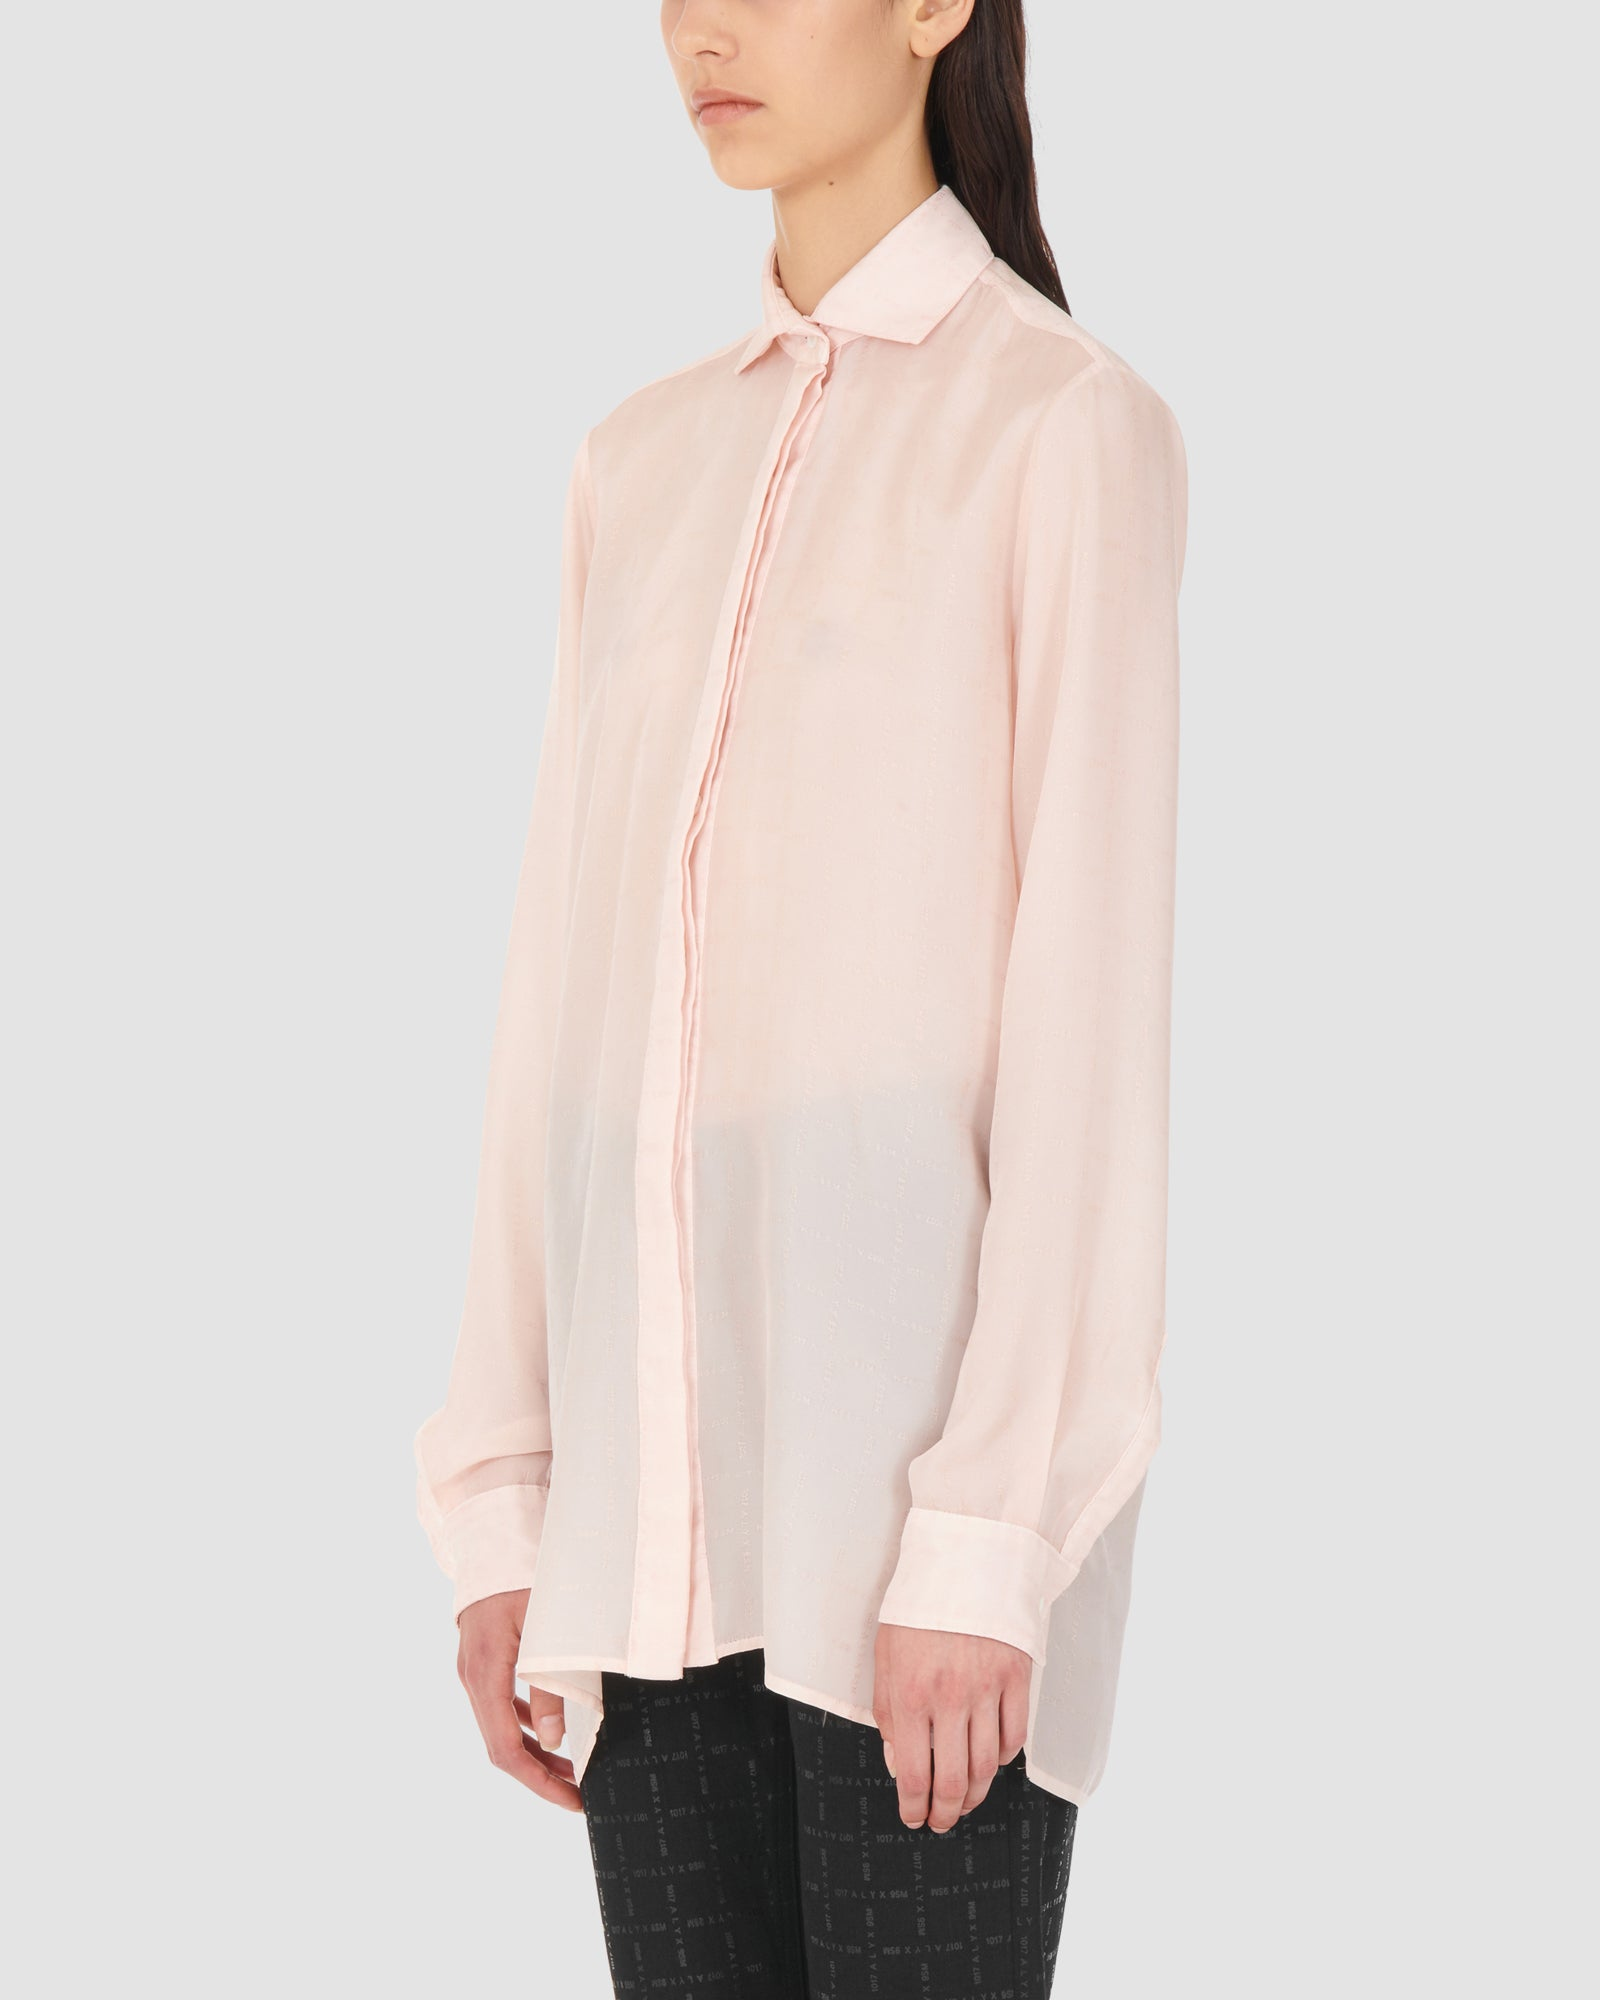 1017 ALYX 9SM | CROSSHATCH LOGO SILK SHIRT | Shirt | Google Shopping, PINK, S20, Shirts, SS20, TOPS & SHIRTS, Woman, WOMEN